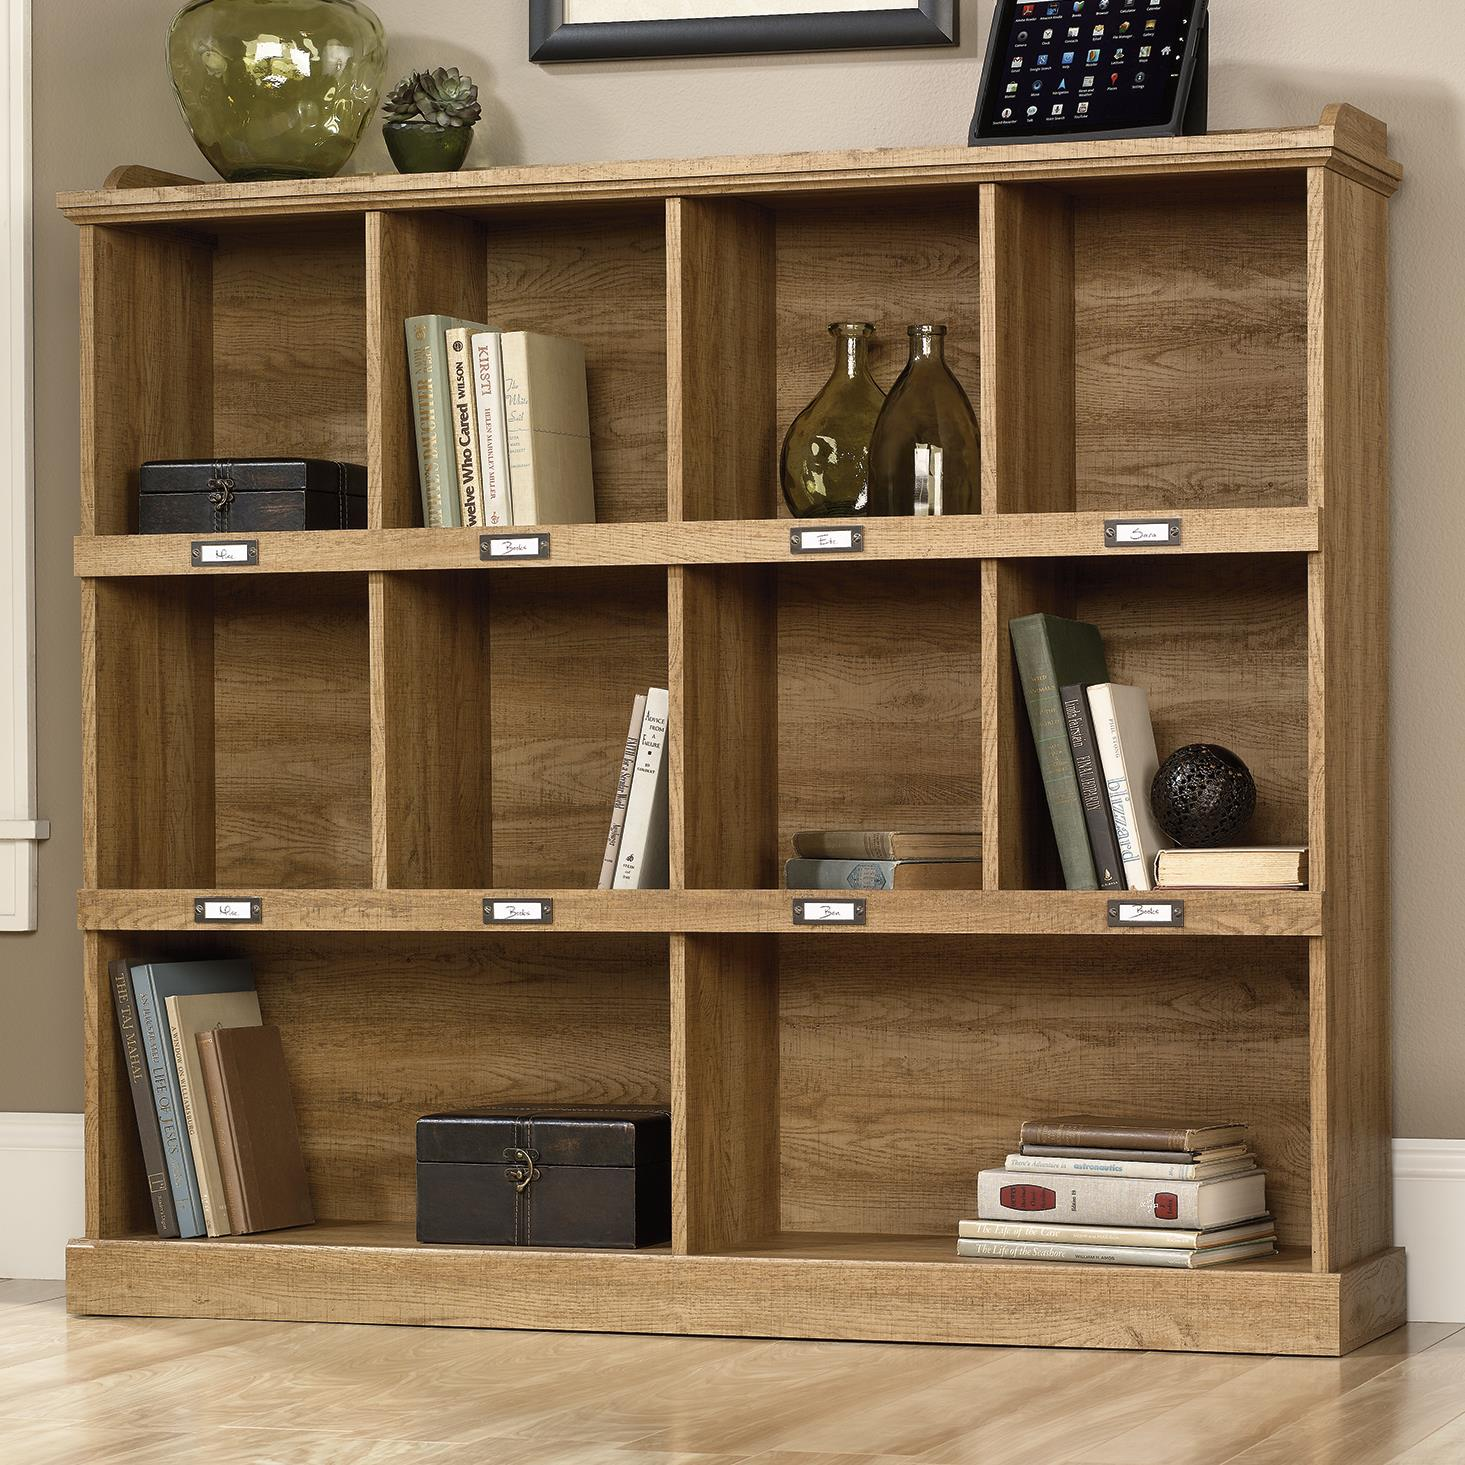 solid glass book long oak wooden will salt lane lacquered ii wood brown bookcase and frameless of full sliding as light barrister room look sauder large with elegant make wide doors bookcases size well case that your